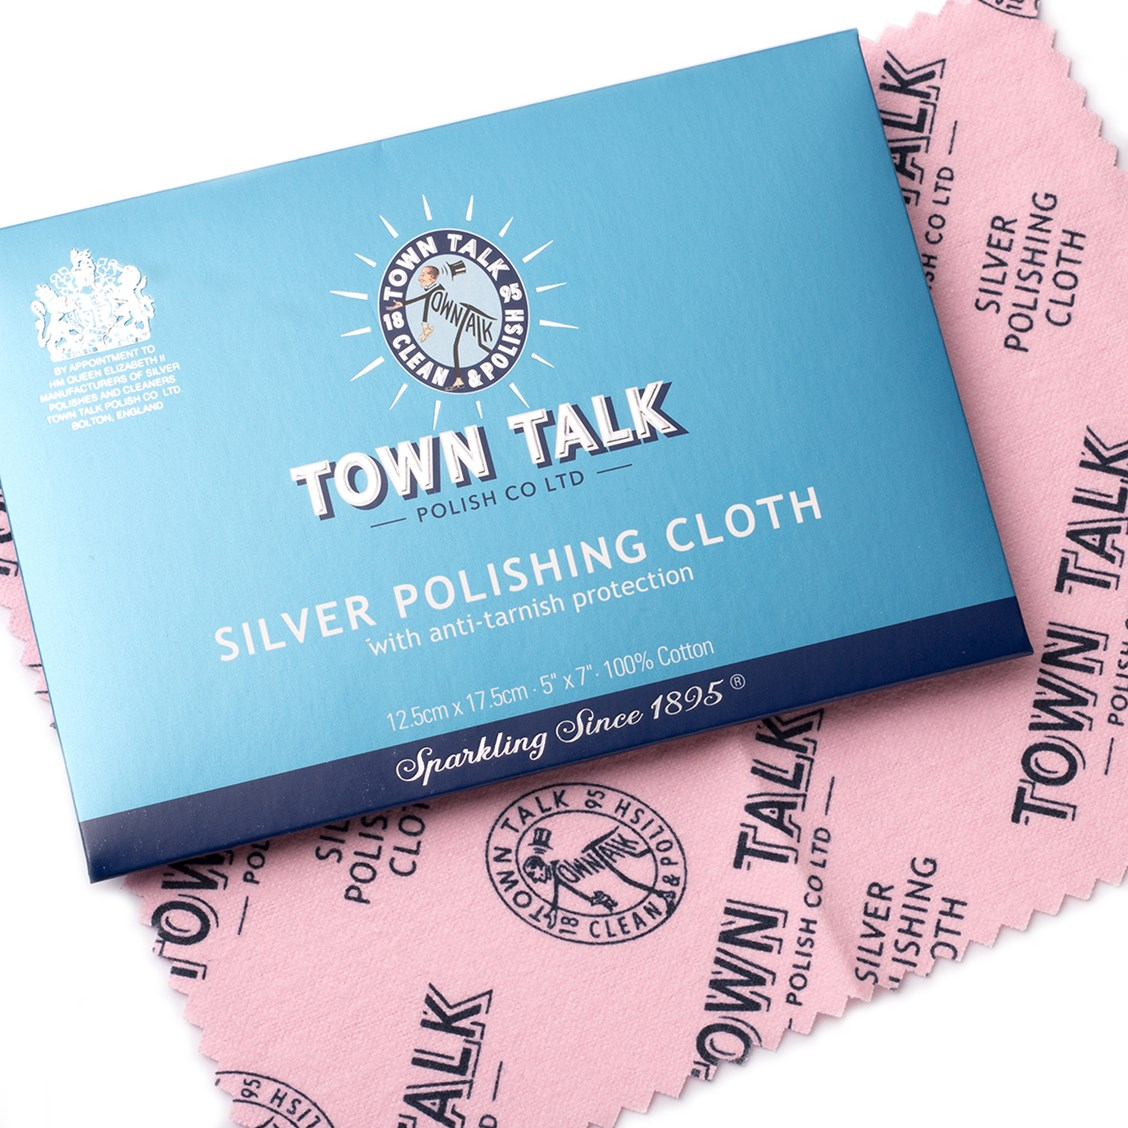 Polishing Cloth Jewellery Cleaning SIlver Care TownTalk Polish Cloth Silver Polishing Cloth Tarnish Remover Polishing Jewellery